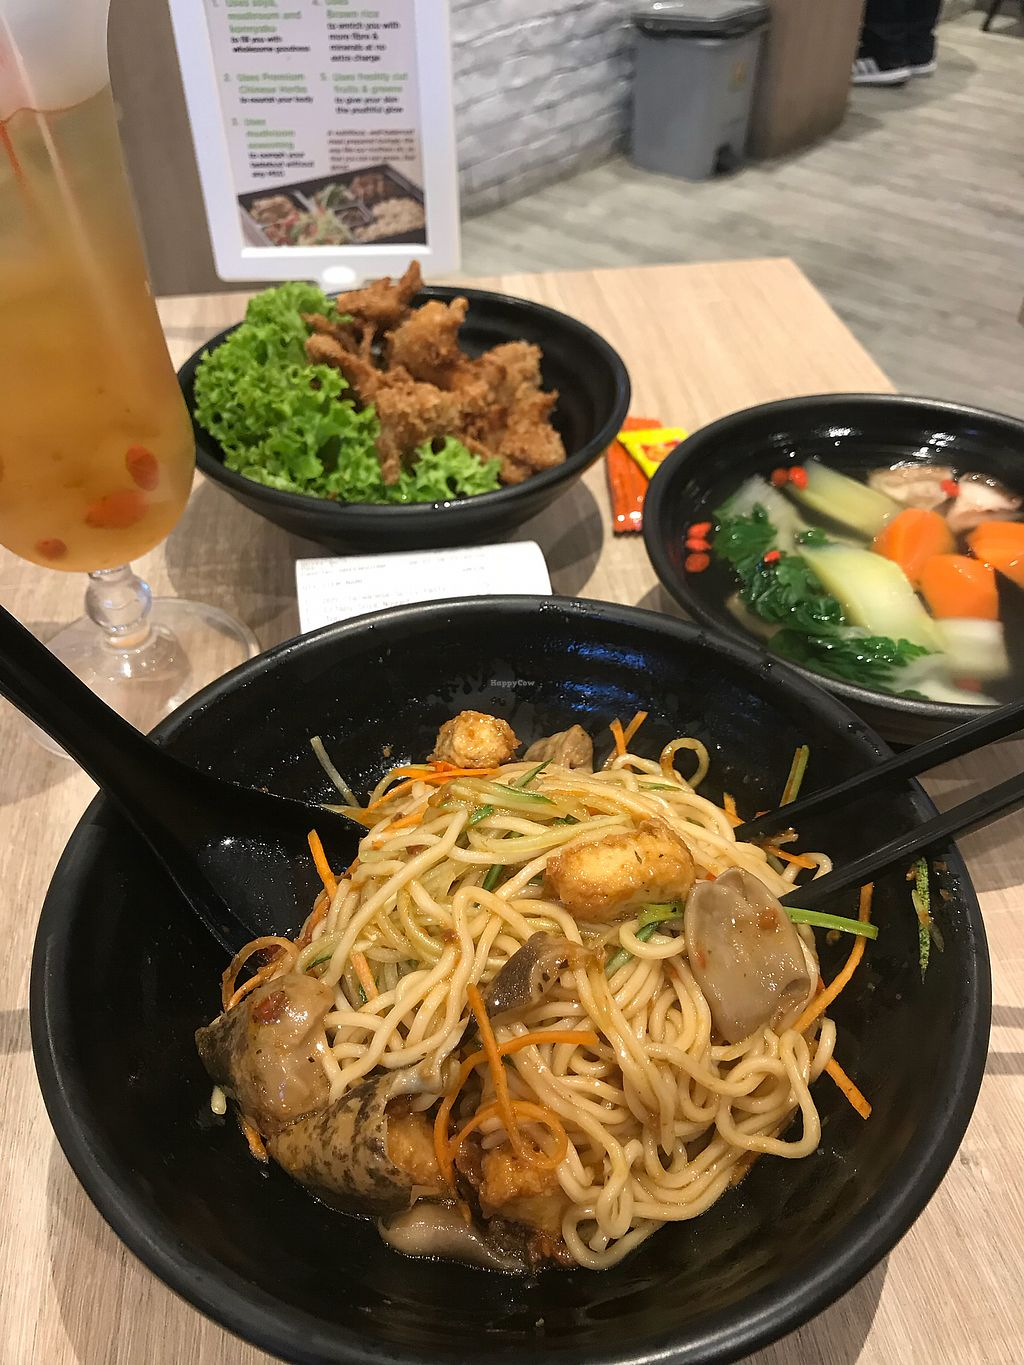 """Photo of Green Dot - Bedok  by <a href=""""/members/profile/TofuInvasion"""">TofuInvasion</a> <br/>Taiwanese Spicy Paste Noodle <br/> January 28, 2018  - <a href='/contact/abuse/image/43990/351714'>Report</a>"""